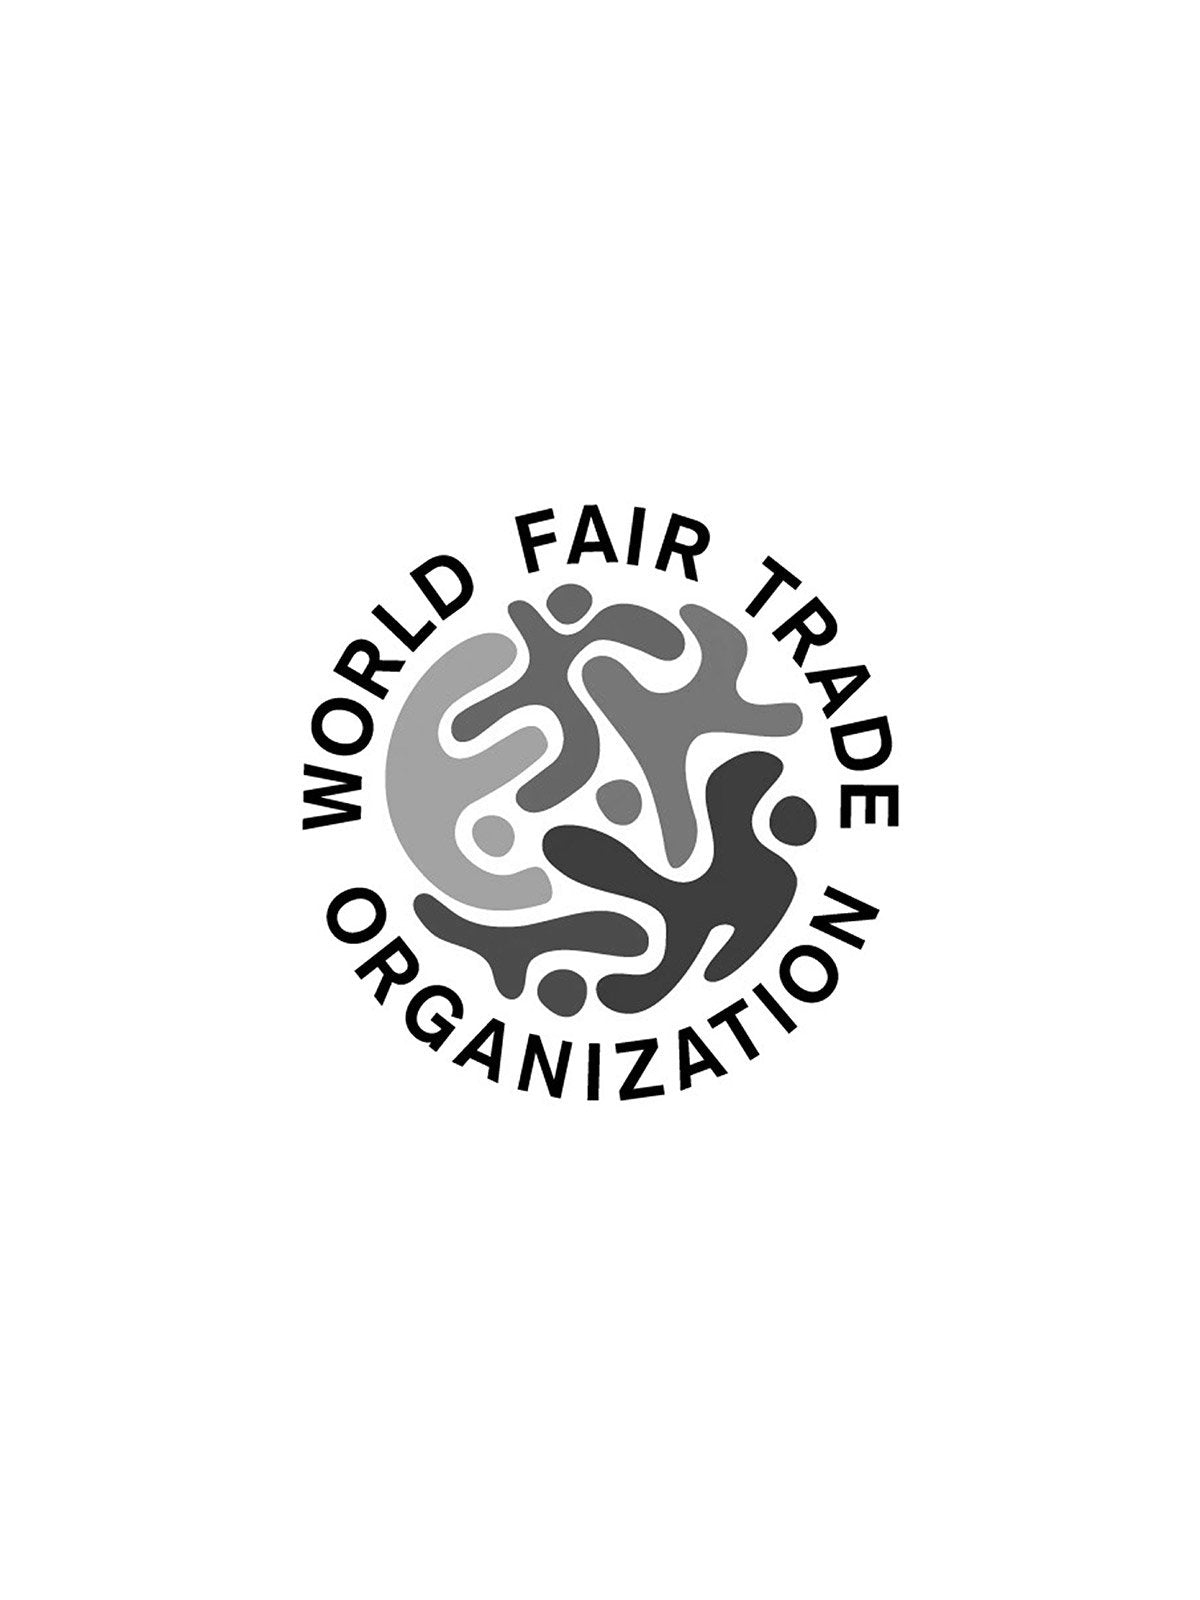 all_worldfairtradeorganizationlogo(bw)1308-000